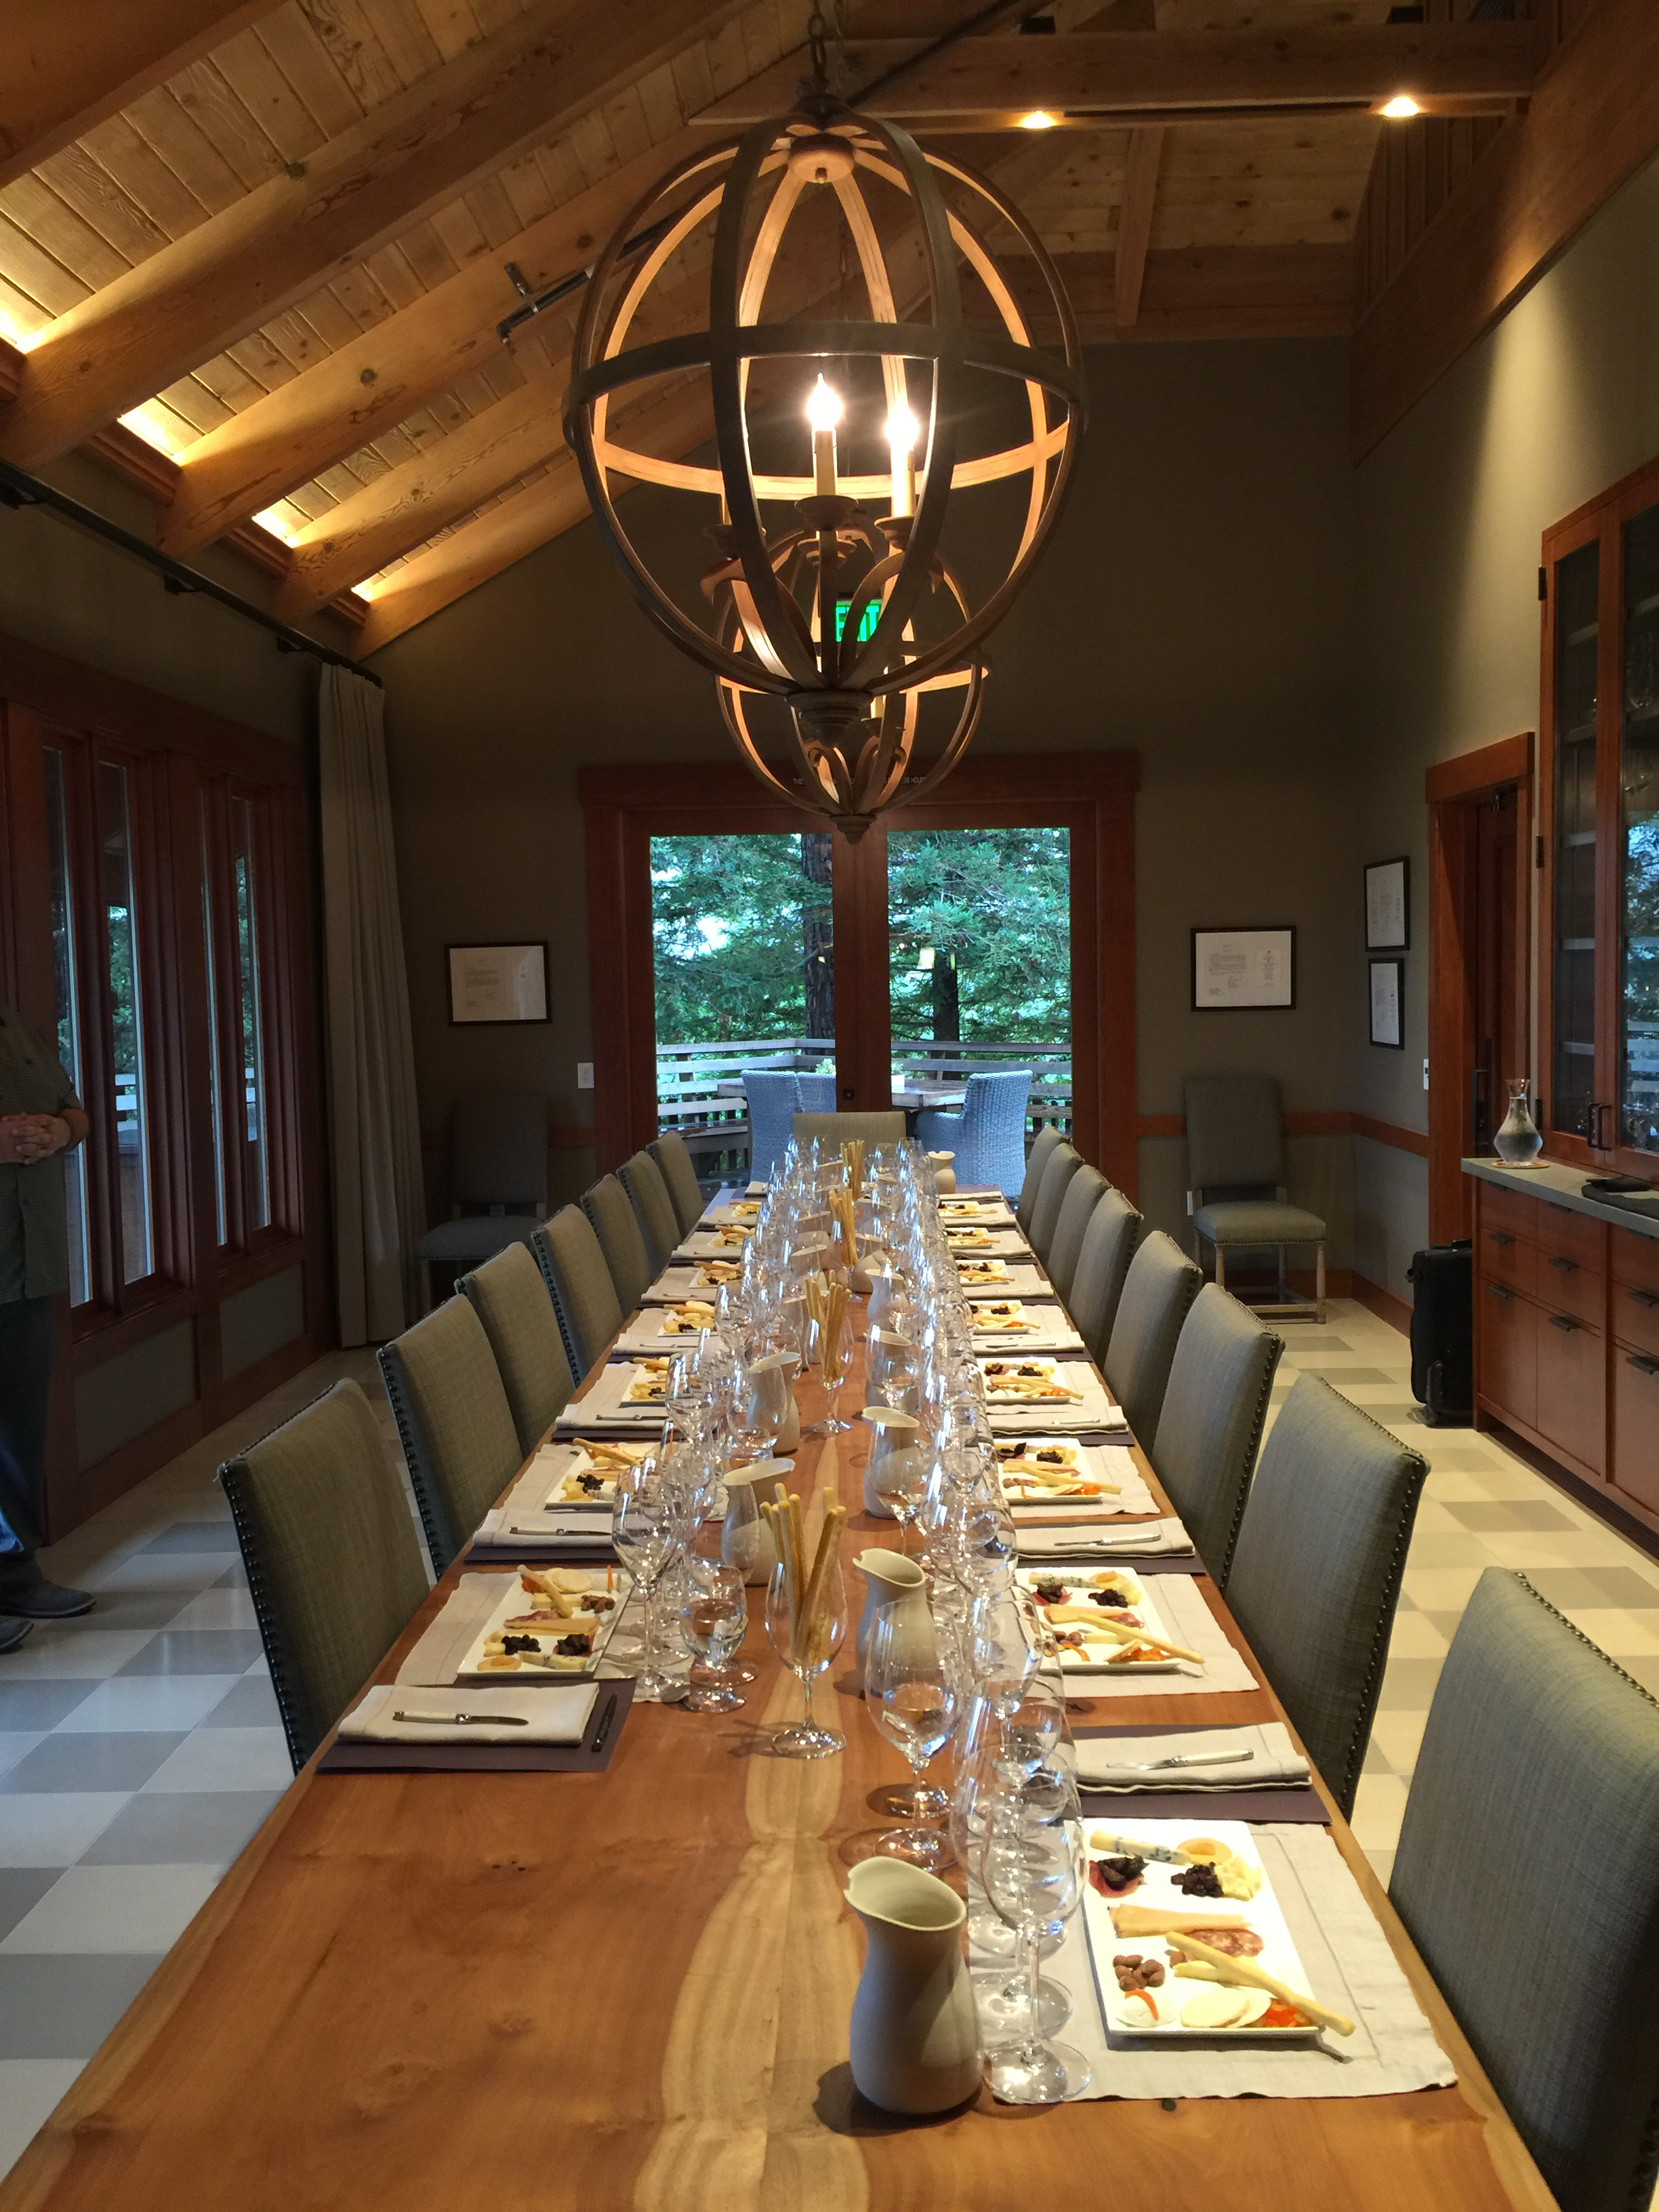 Our tasting room was all prepared. Love all the wood details and subtle checkerboard floor. That table!